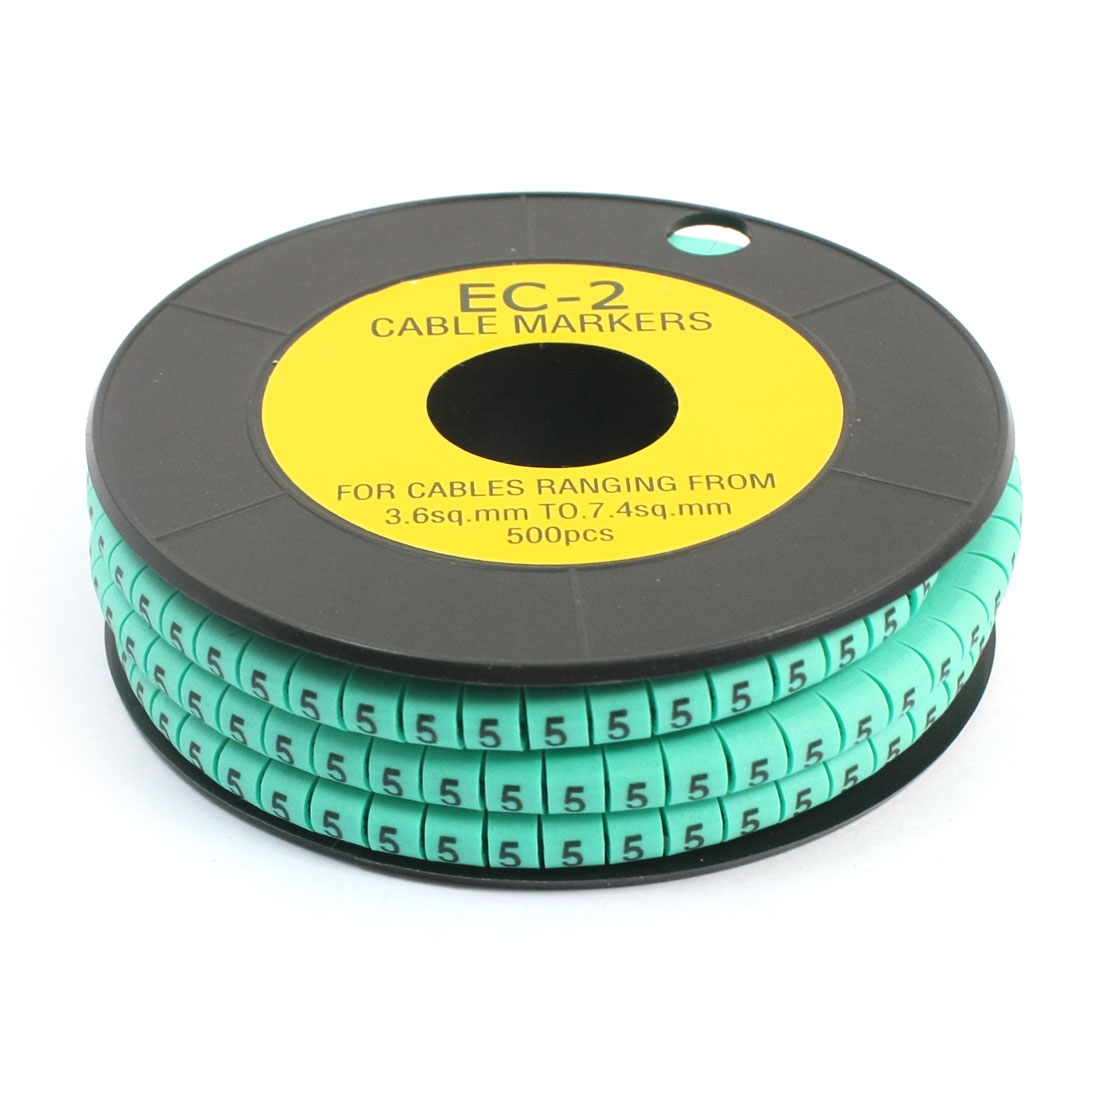 500 Pcs Green Self Locking PVC Number 5 3.6-7.4sq.mm Cable Markers